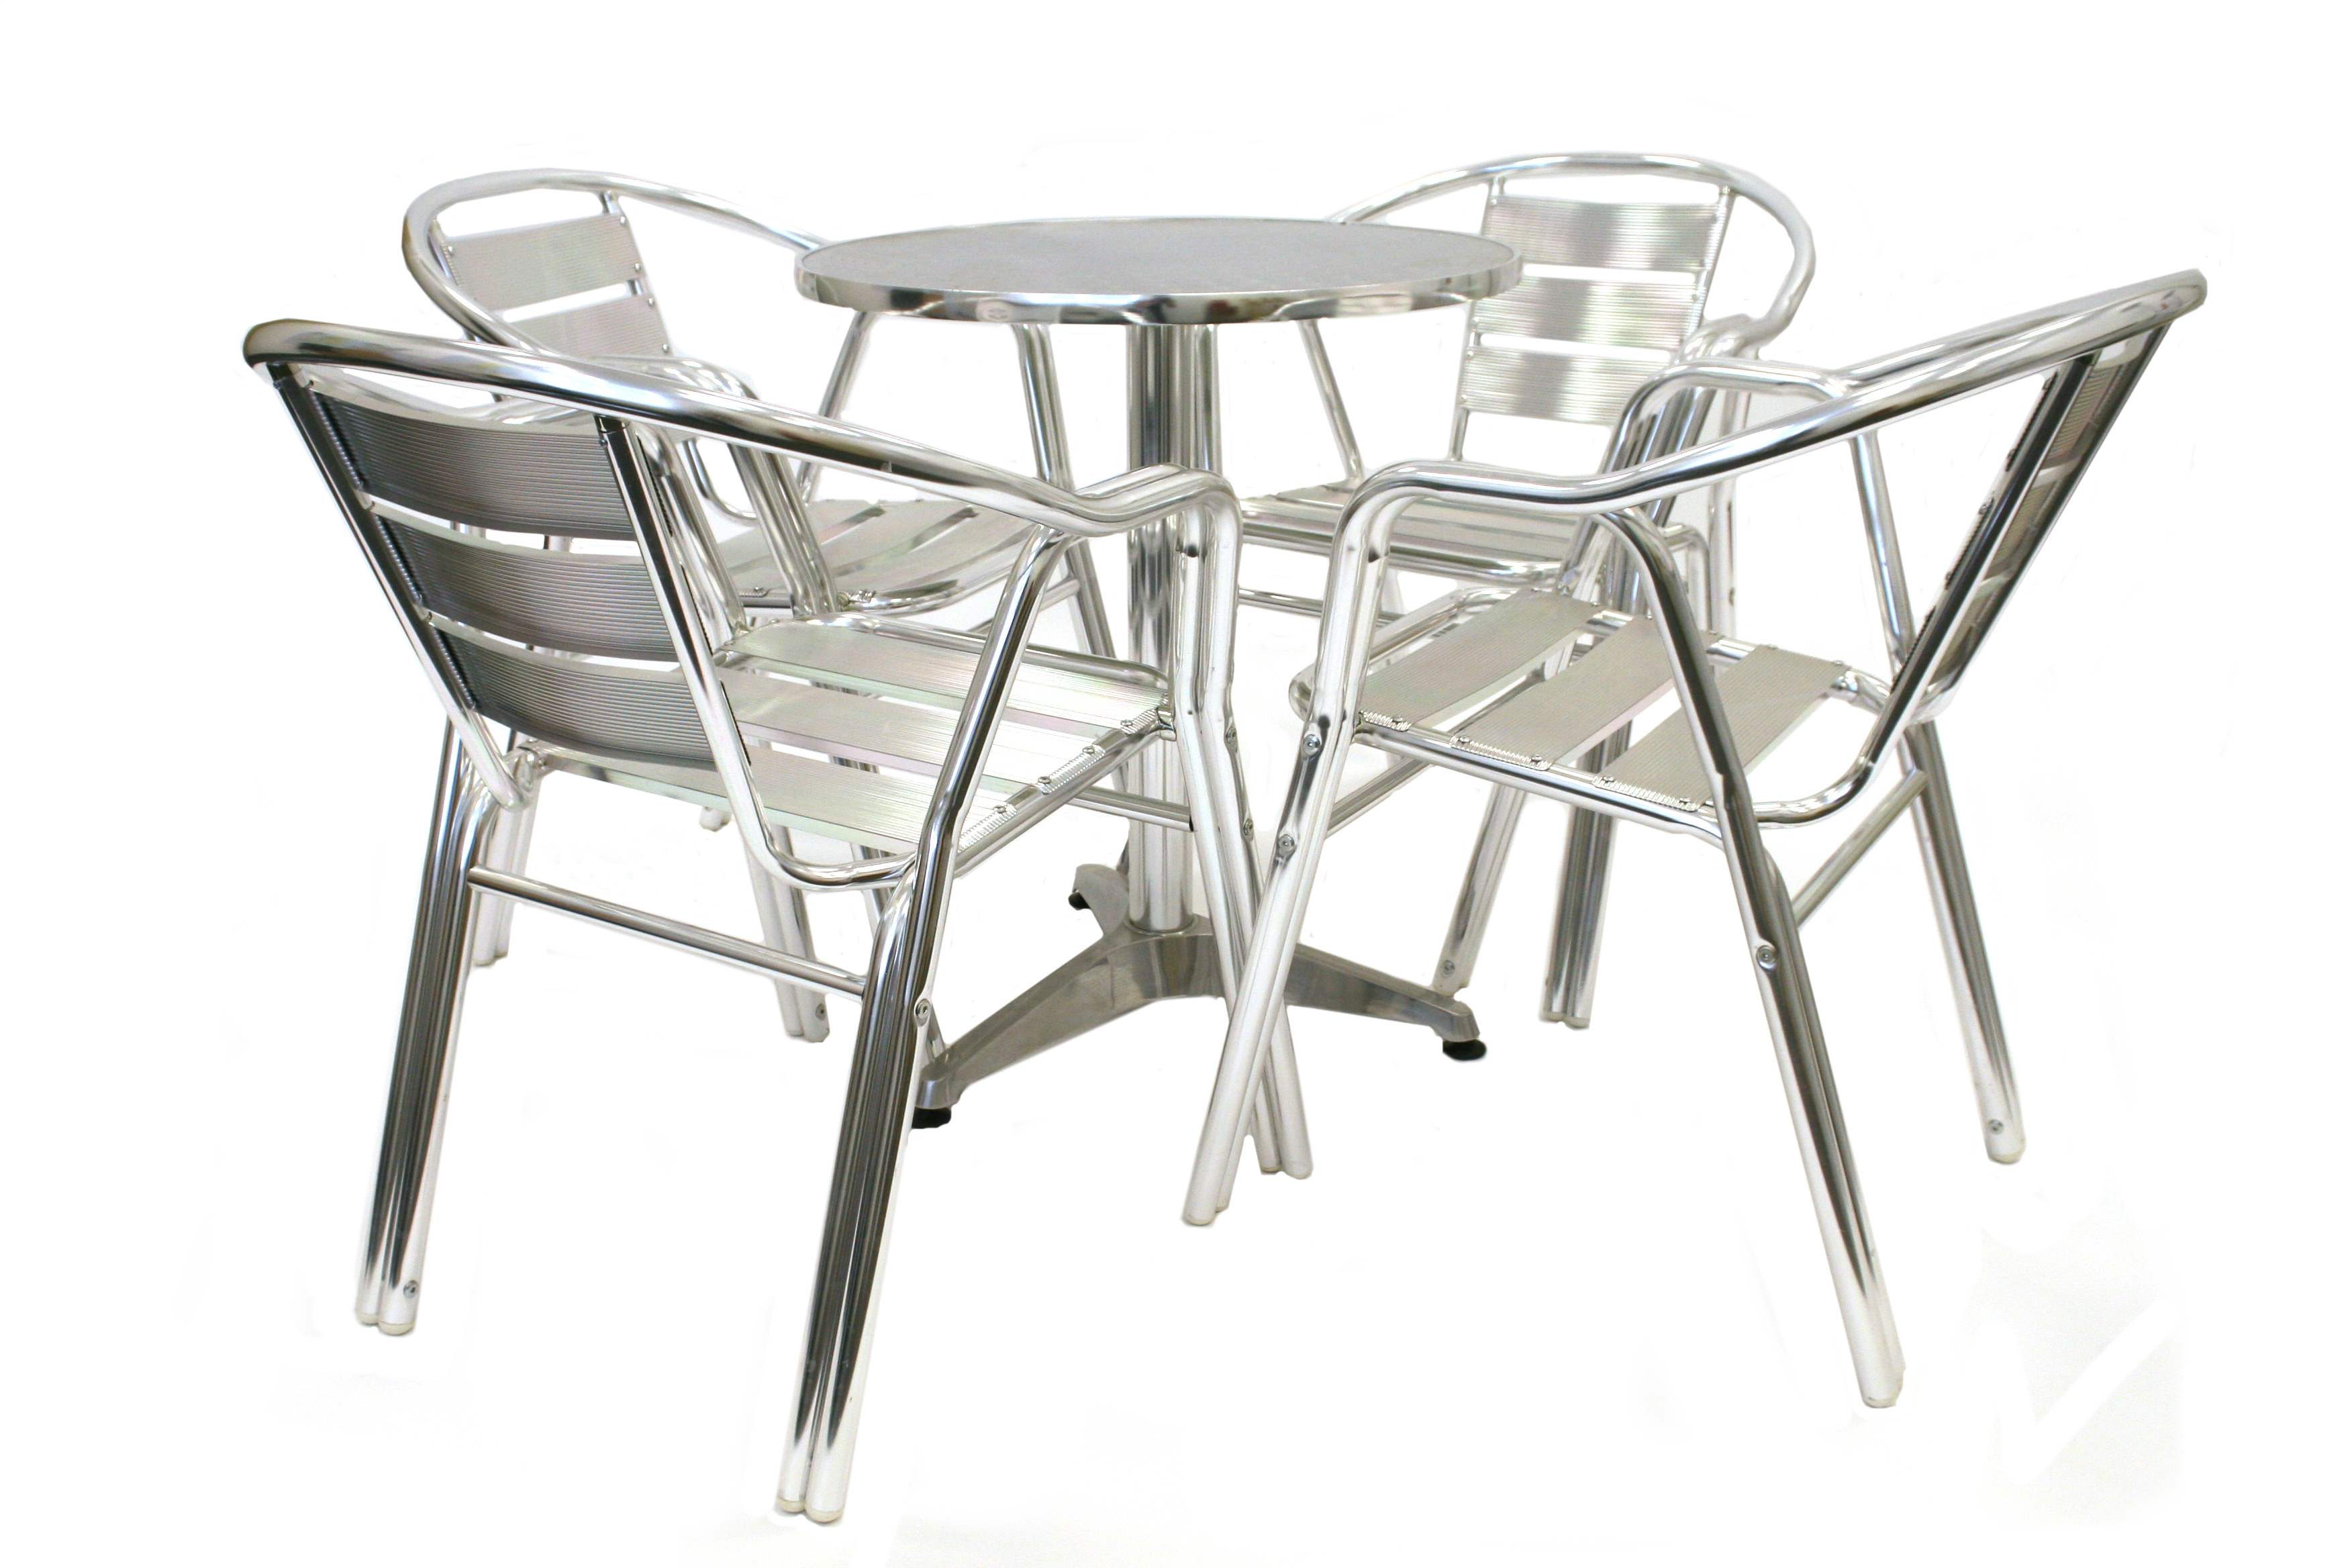 Commercial aluminium cafe set - BE Furniture Sales